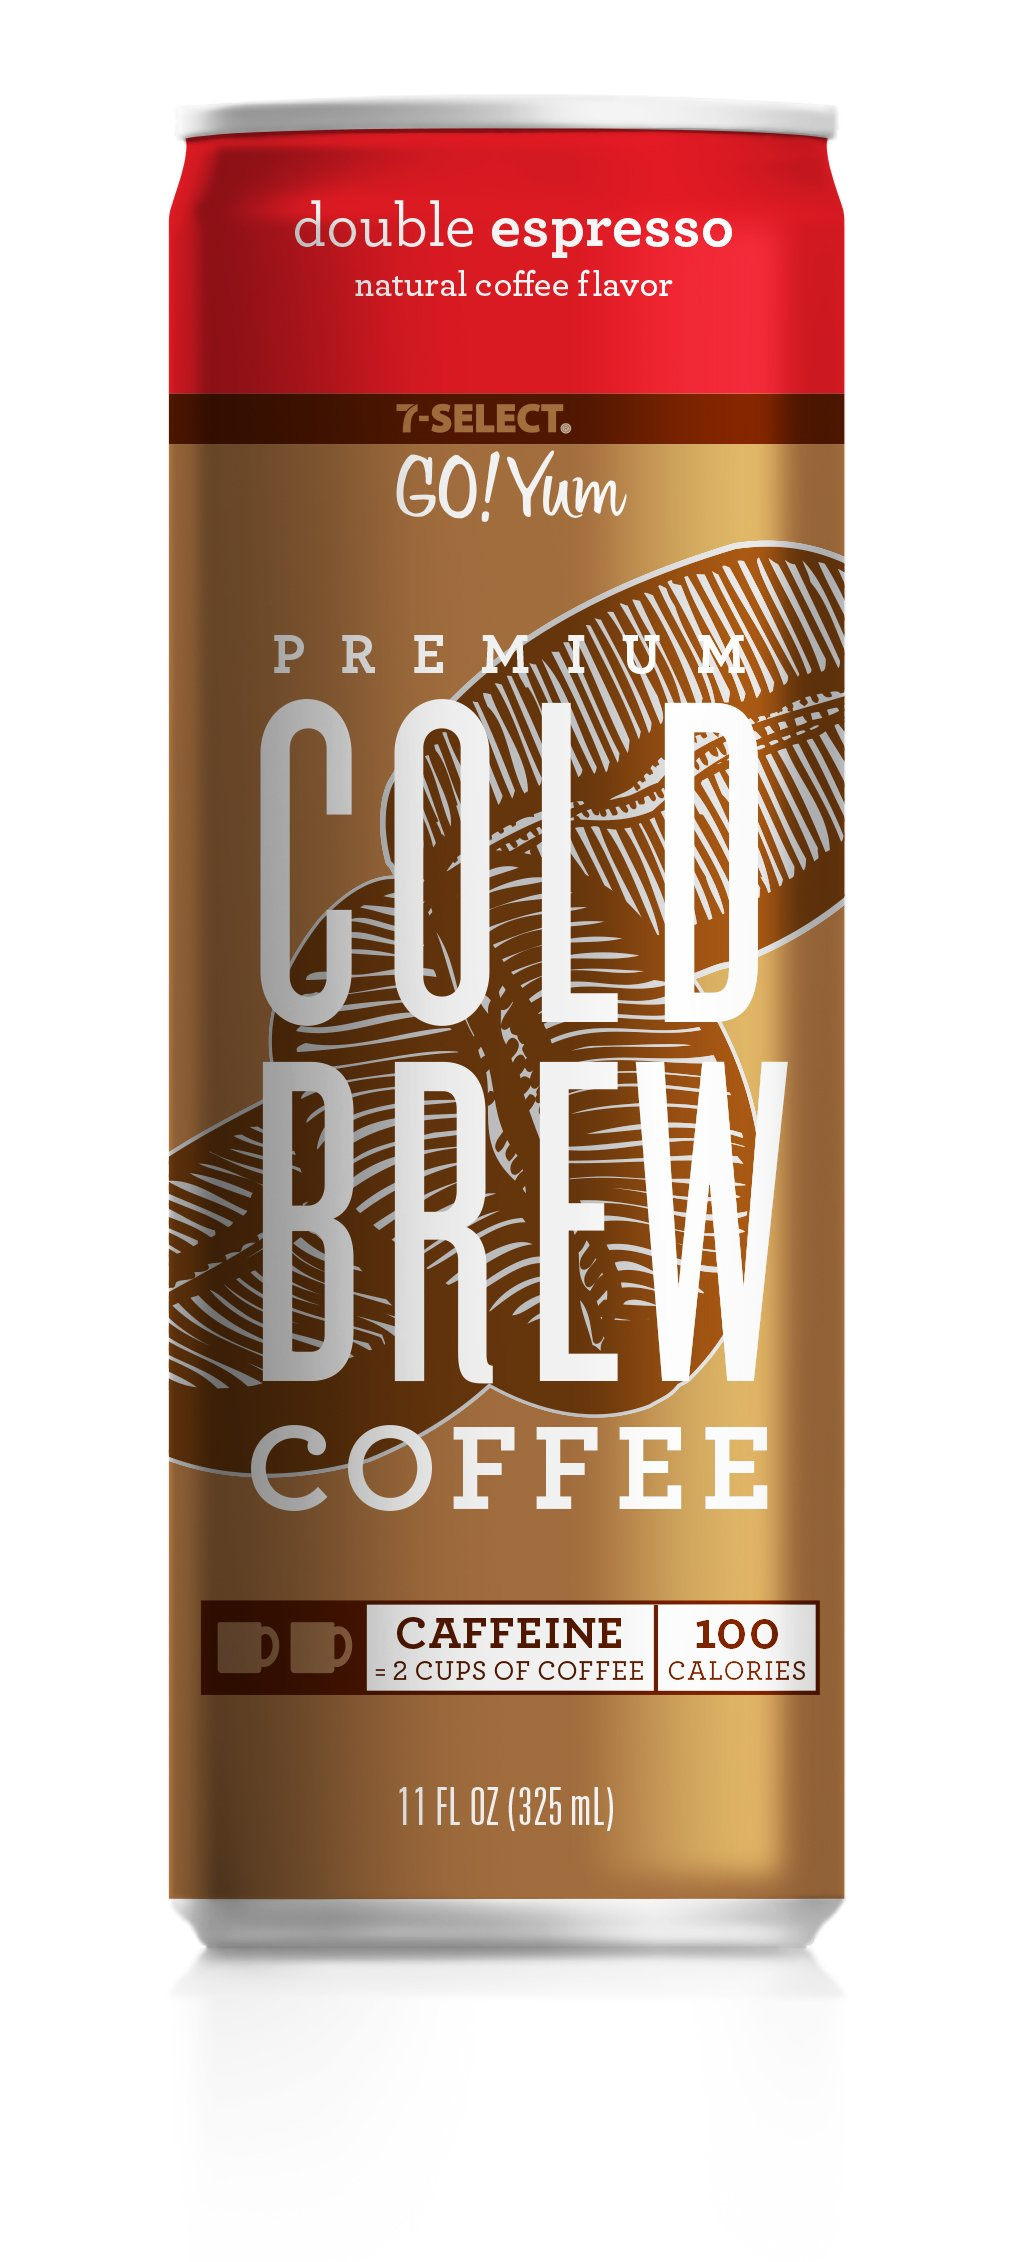 7-Select Premium Cold Brew Coffee-Double Espresso, 11 Ounce Cans (12 Pack)